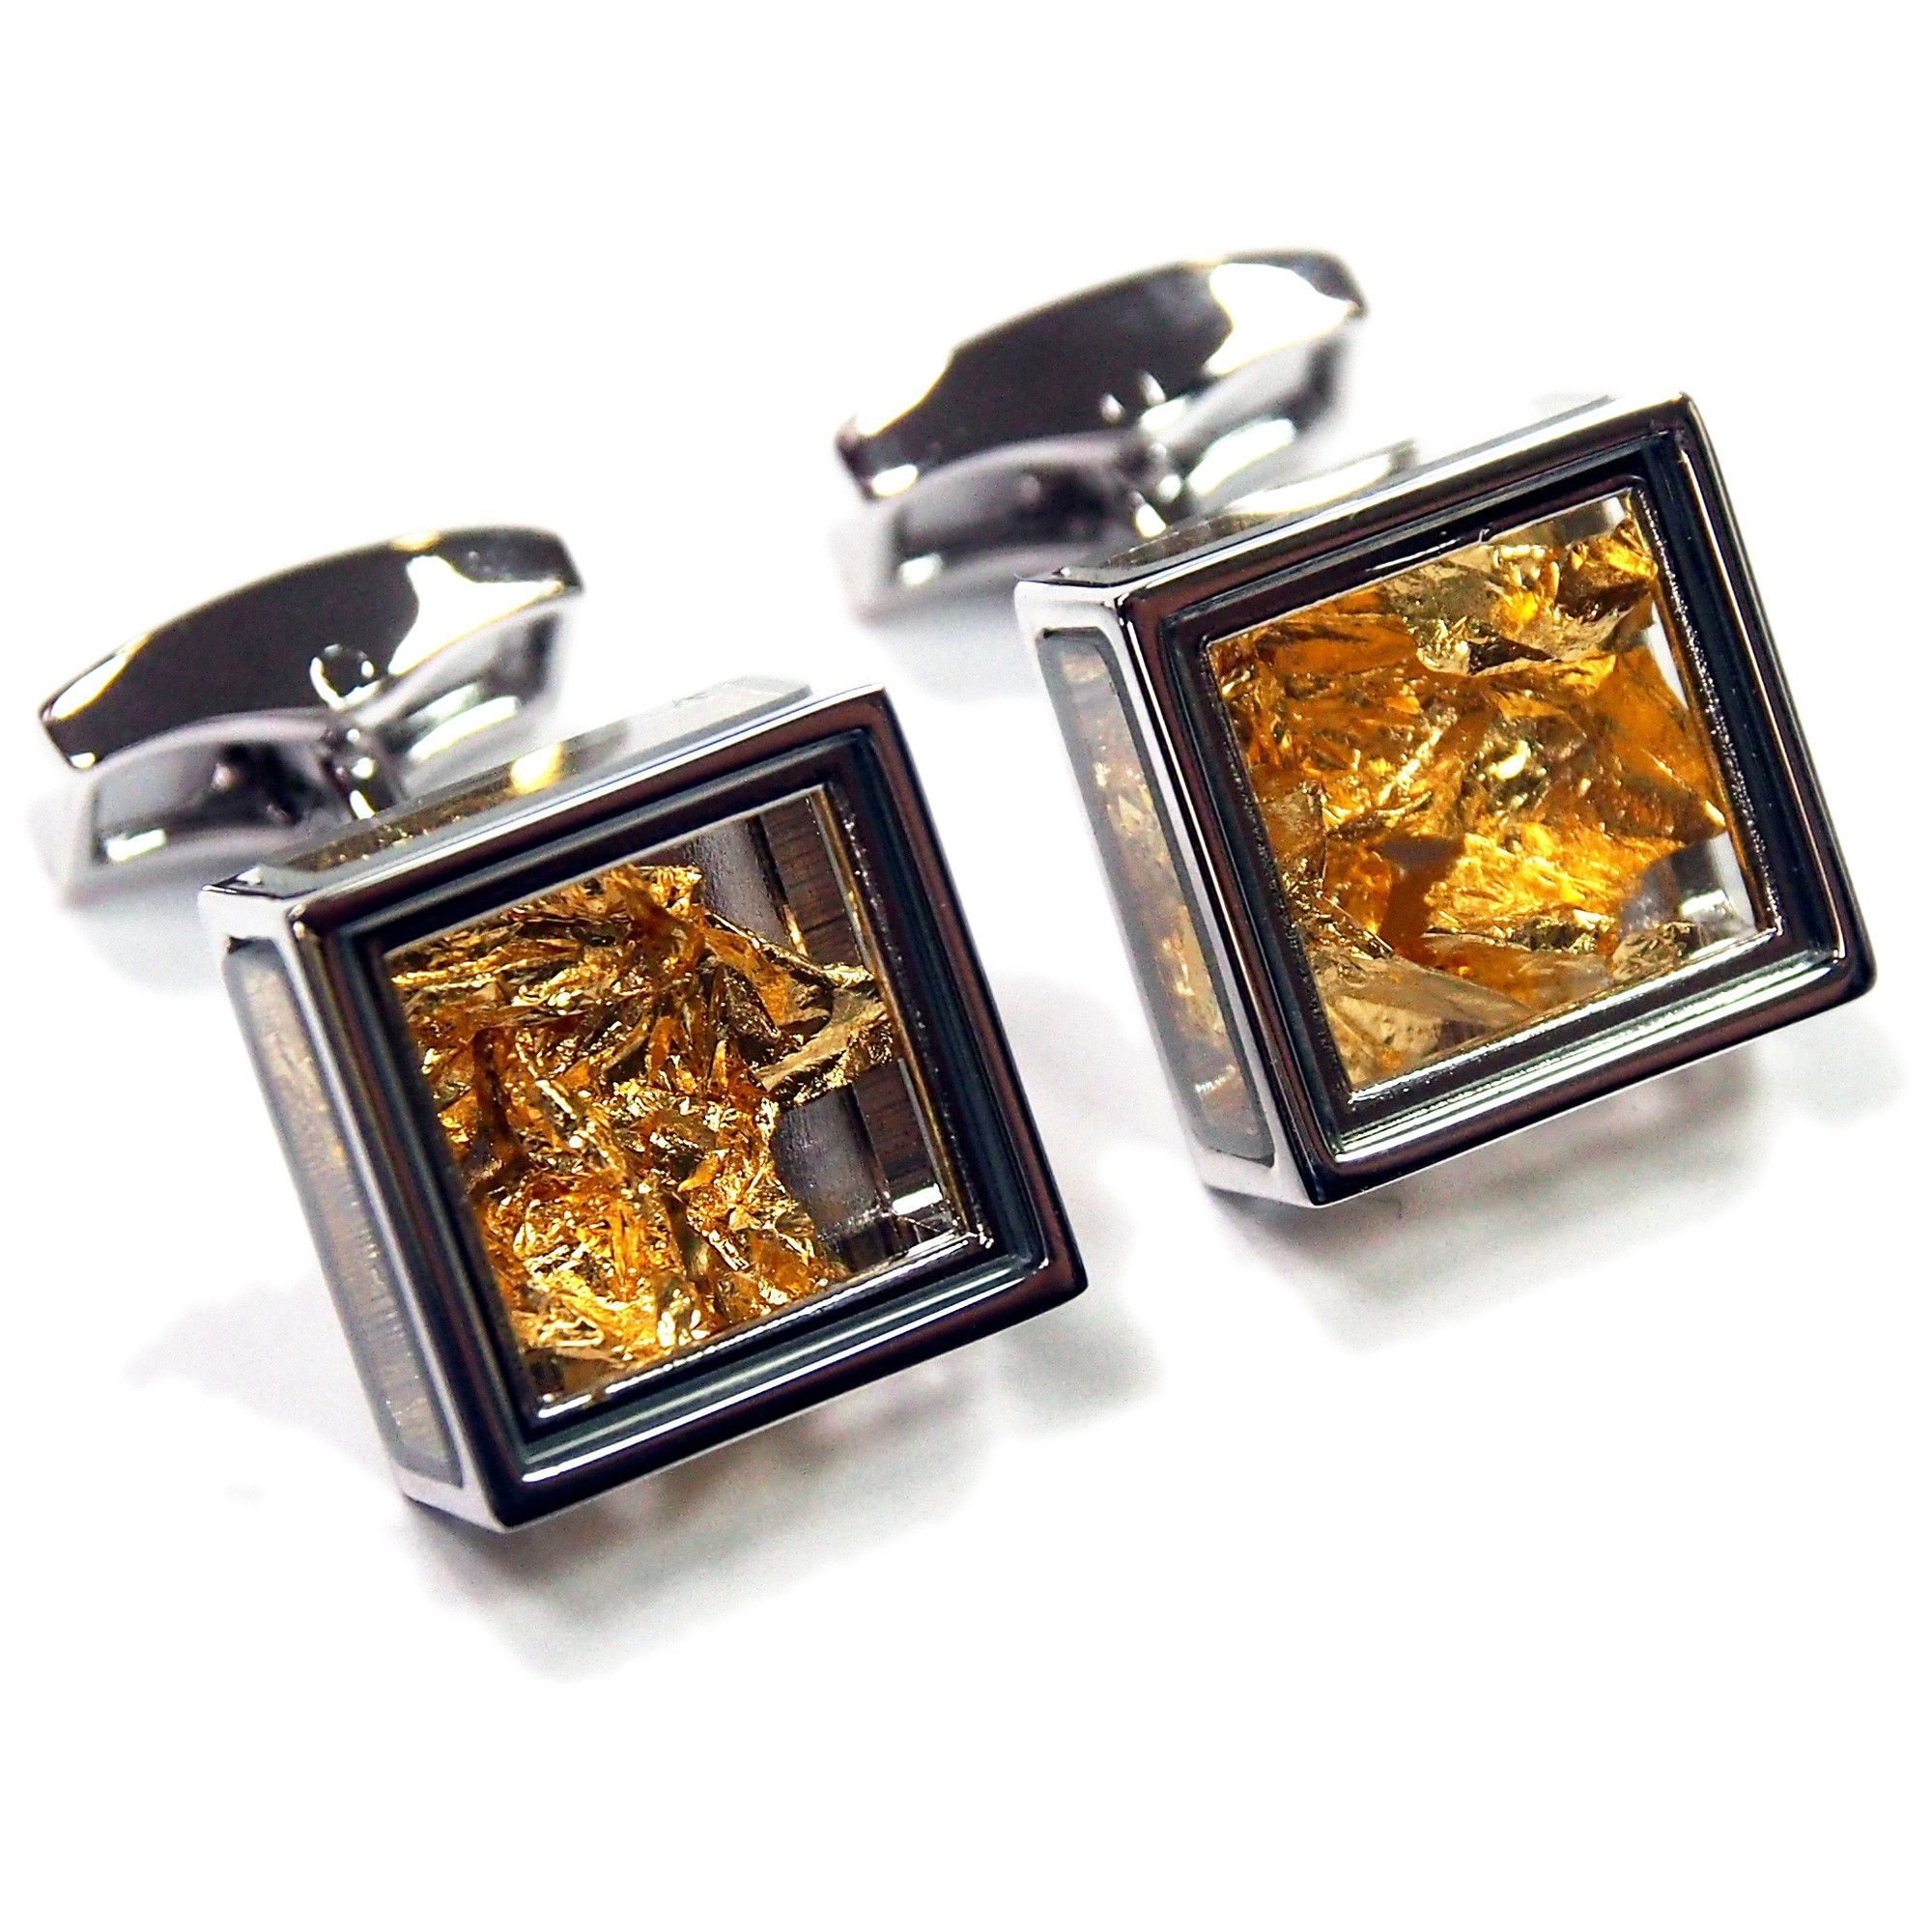 Tateossian Cufflinks - Pandora's Box Gold Leaf - Made in the UK